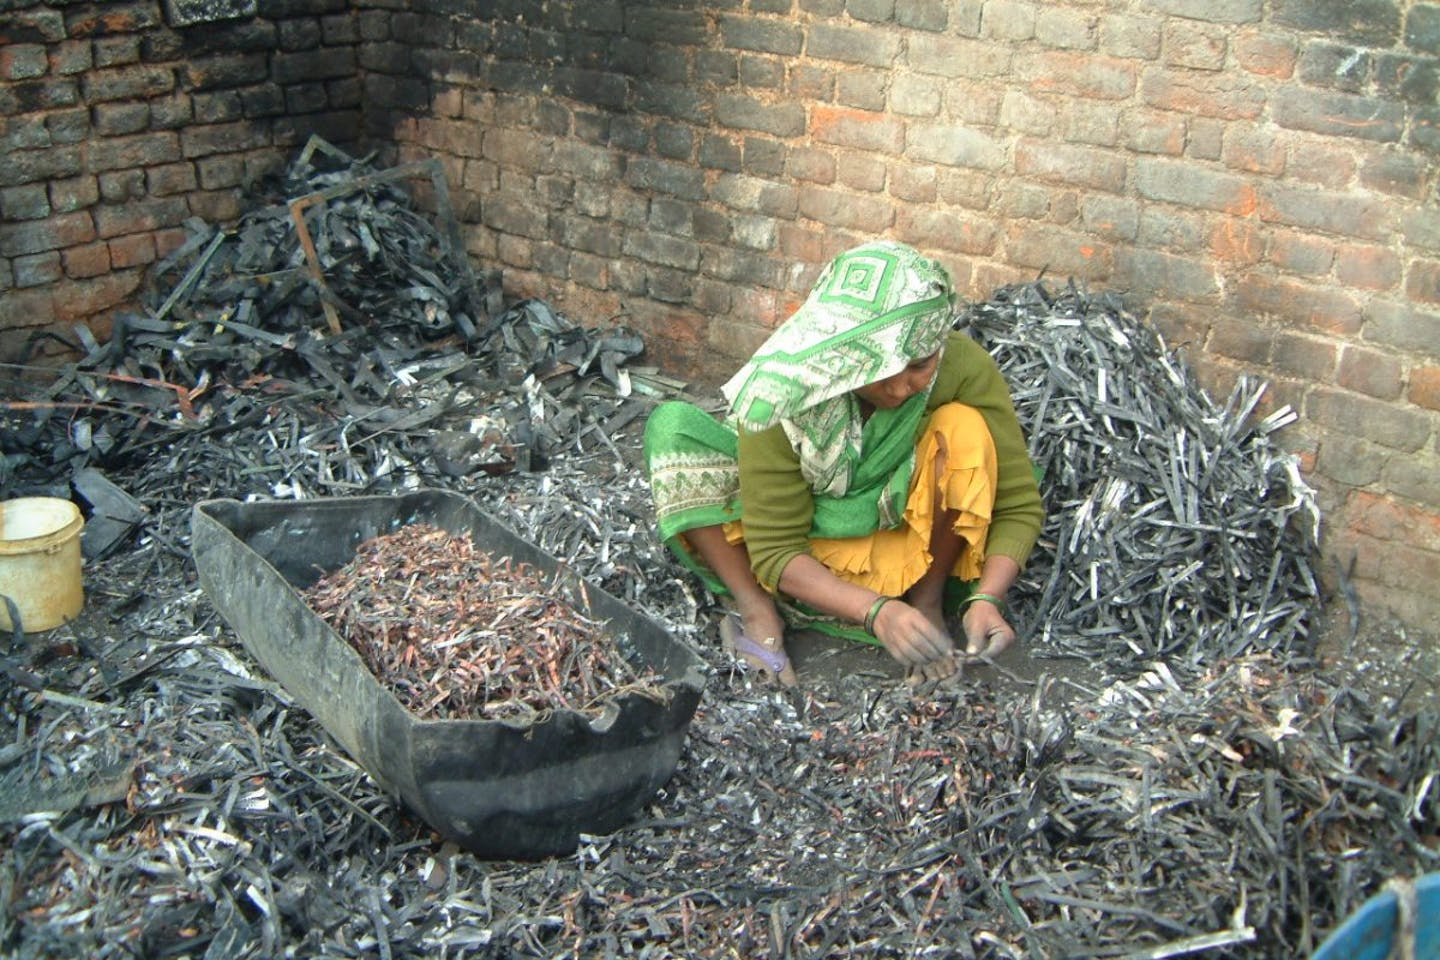 e-waste being processed by hand in India